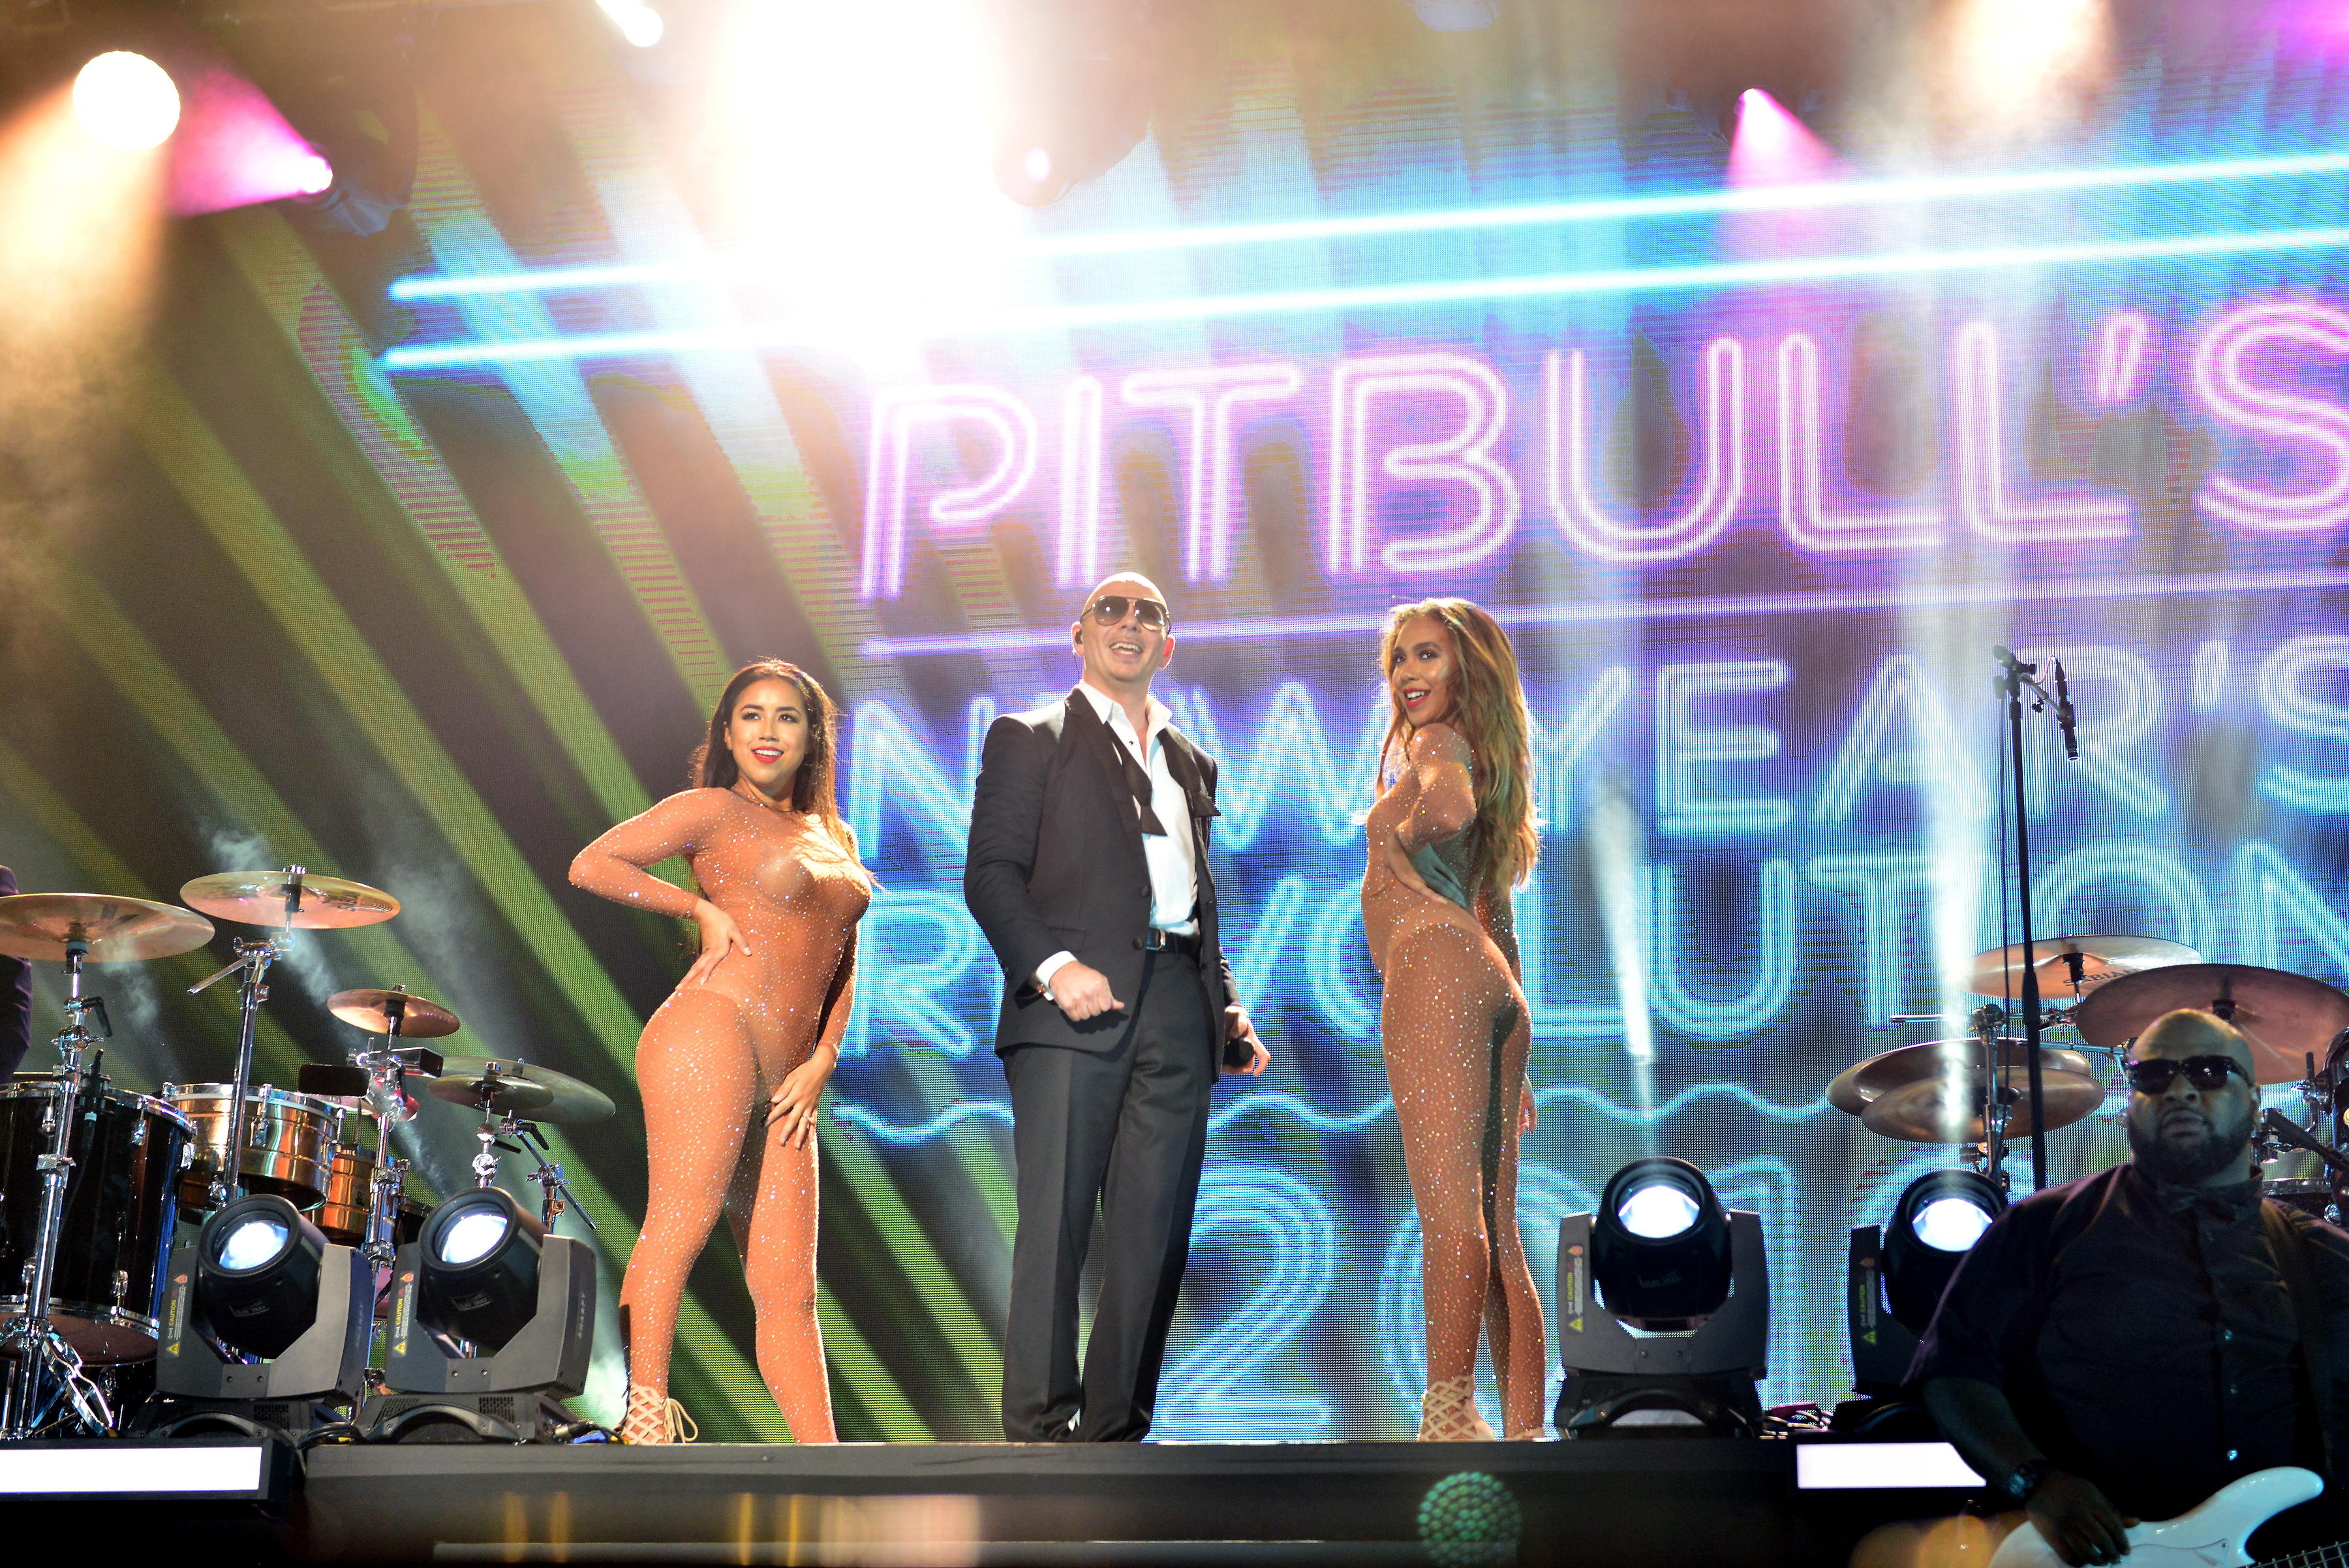 PitBull performs at their New Year's Eve Revolution